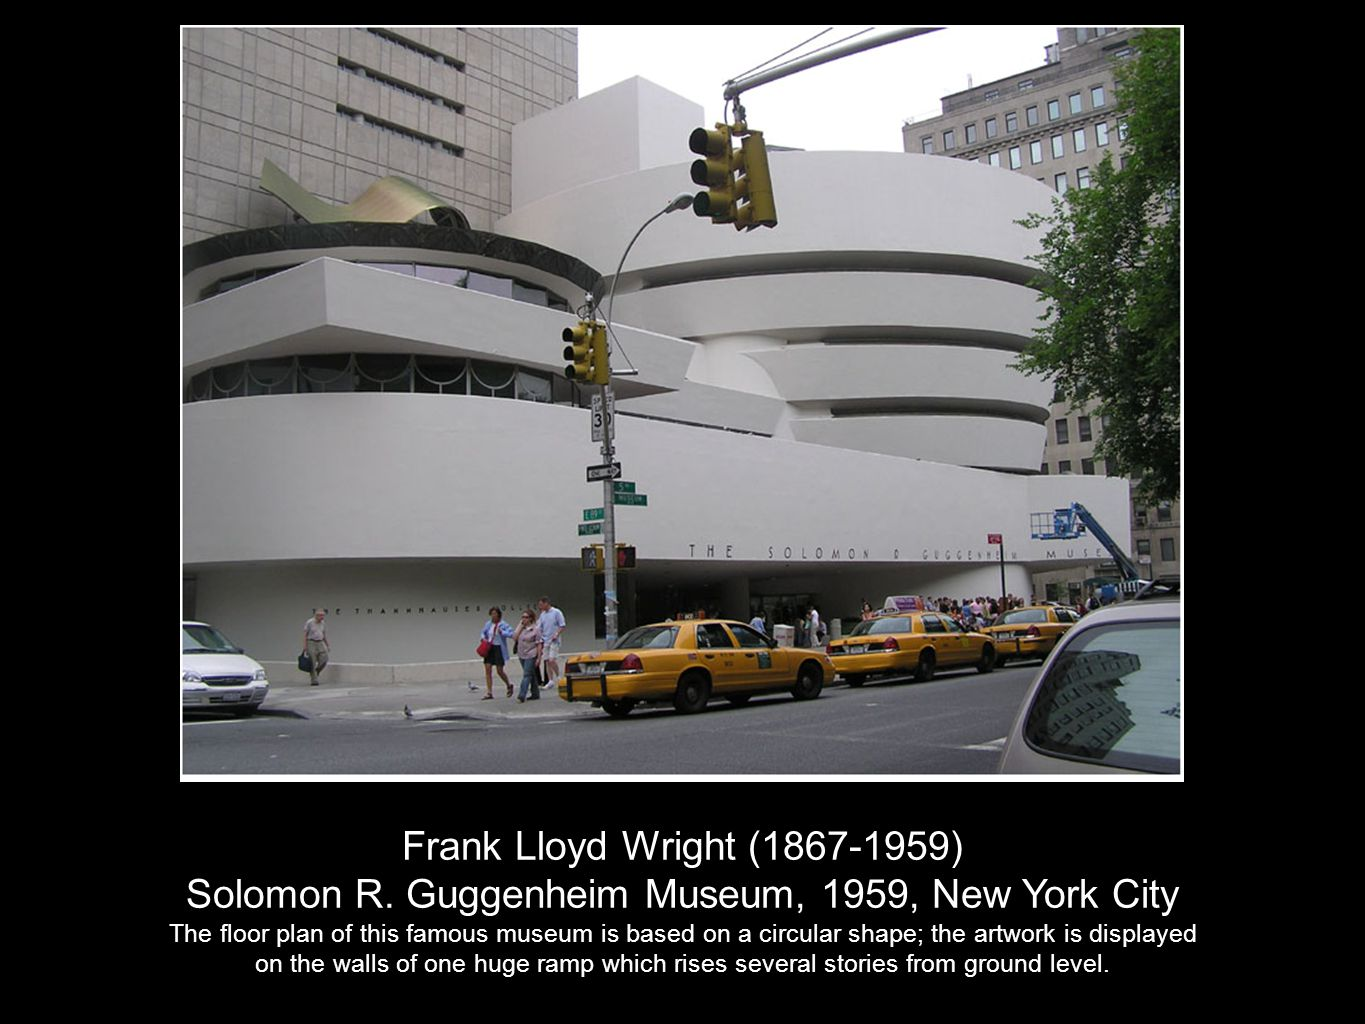 Solomon R. Guggenheim Museum, 1959, New York City